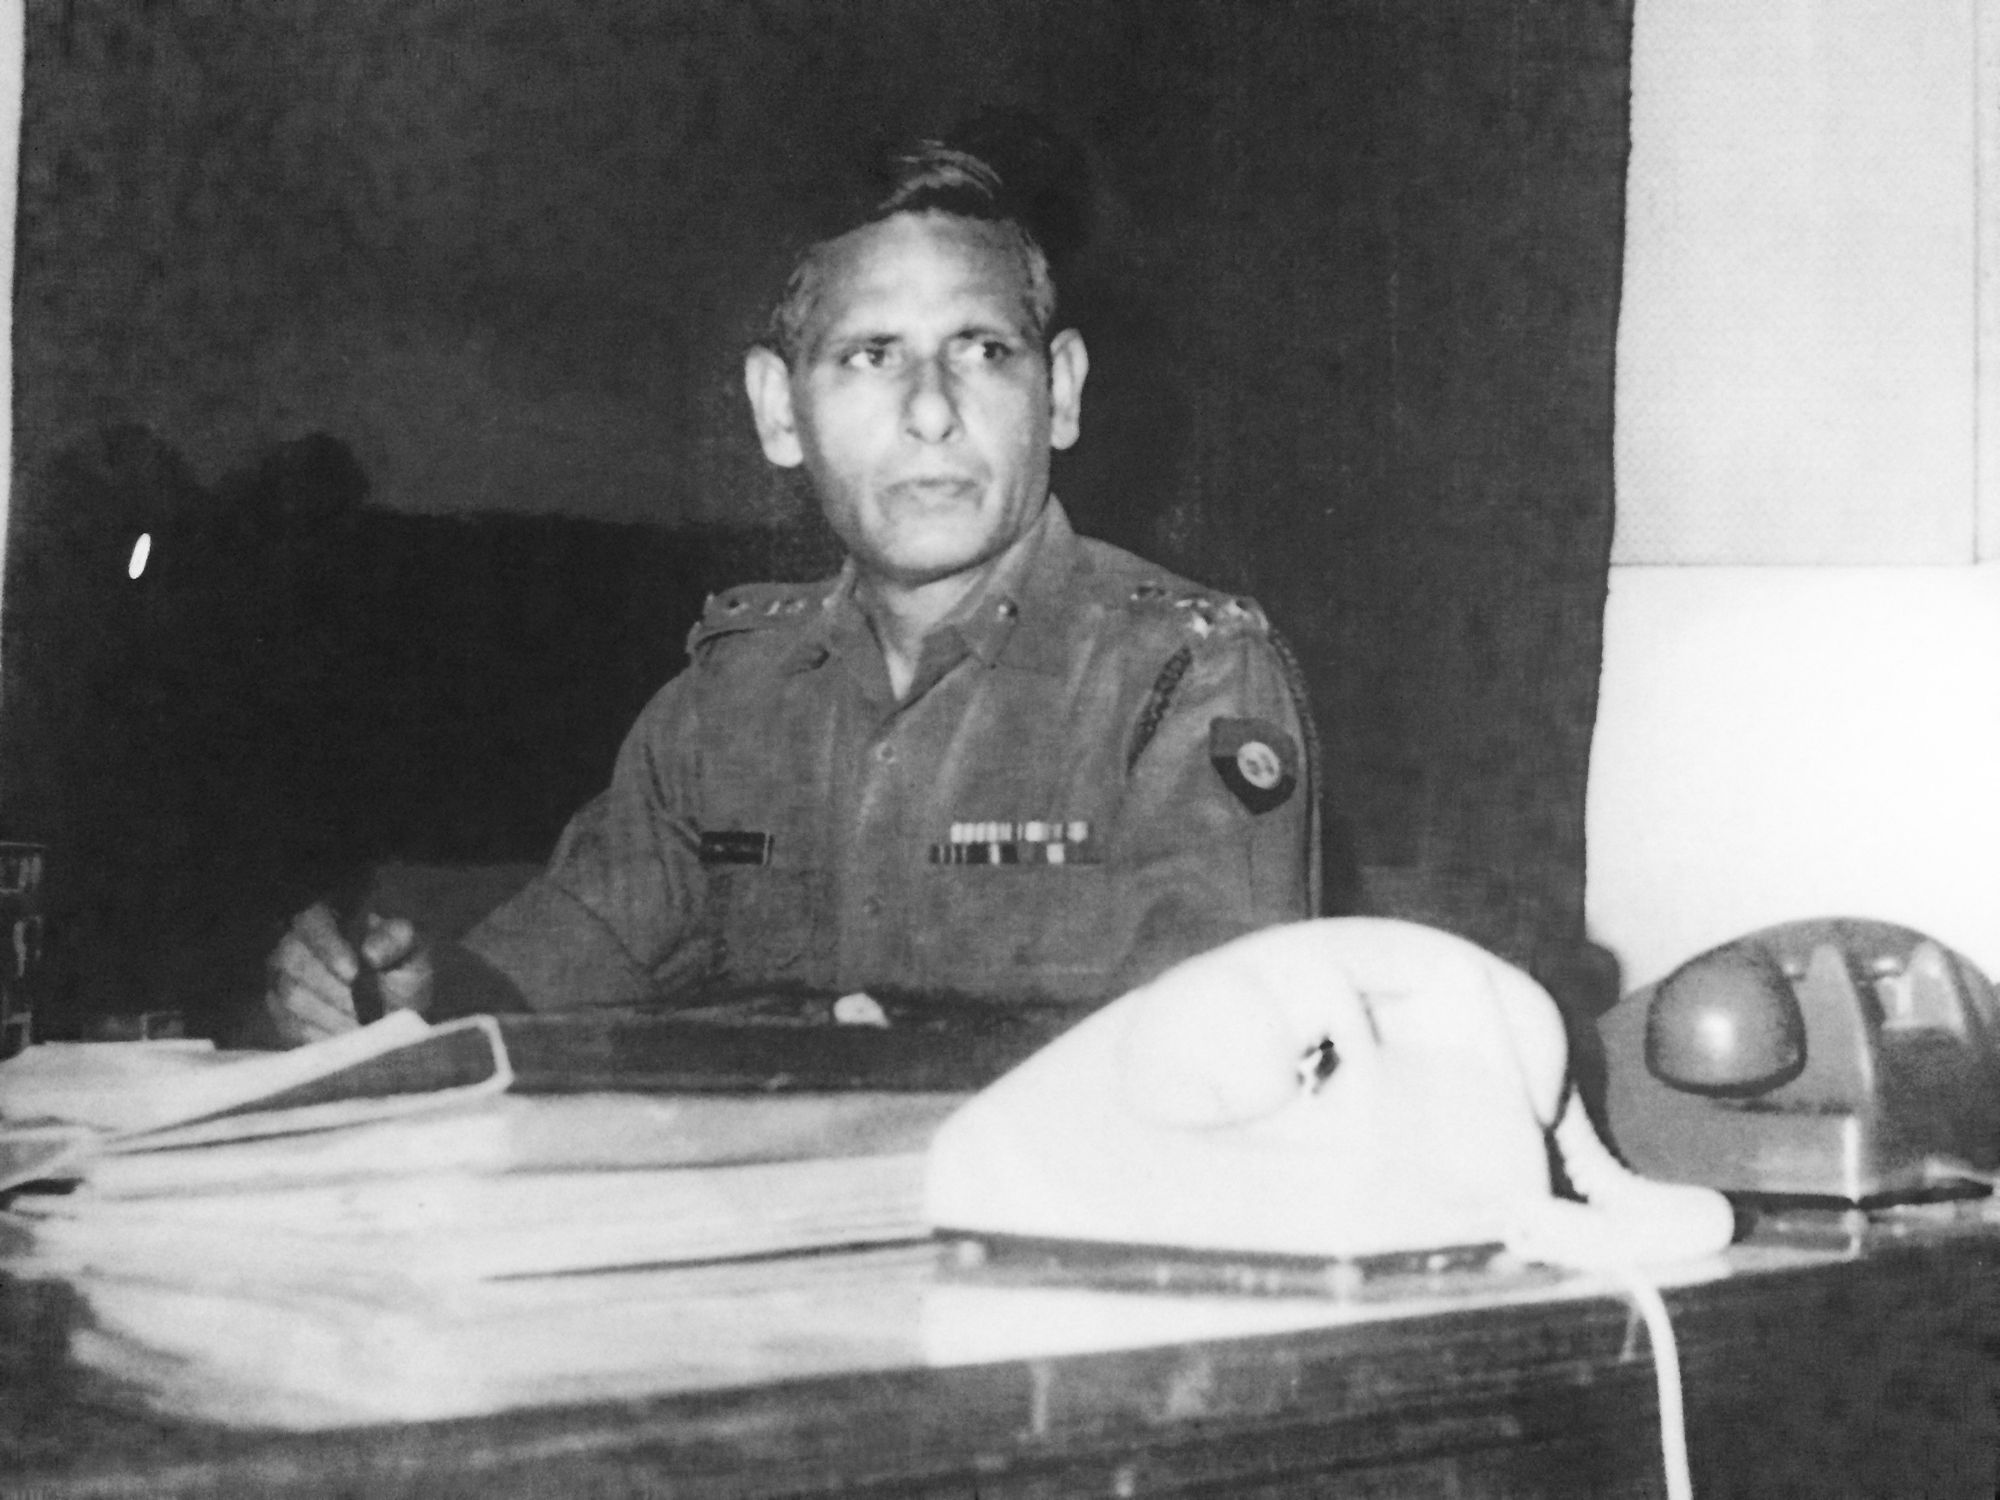 Shiv Bhattacharjya in military uniform at a desk with two telephones